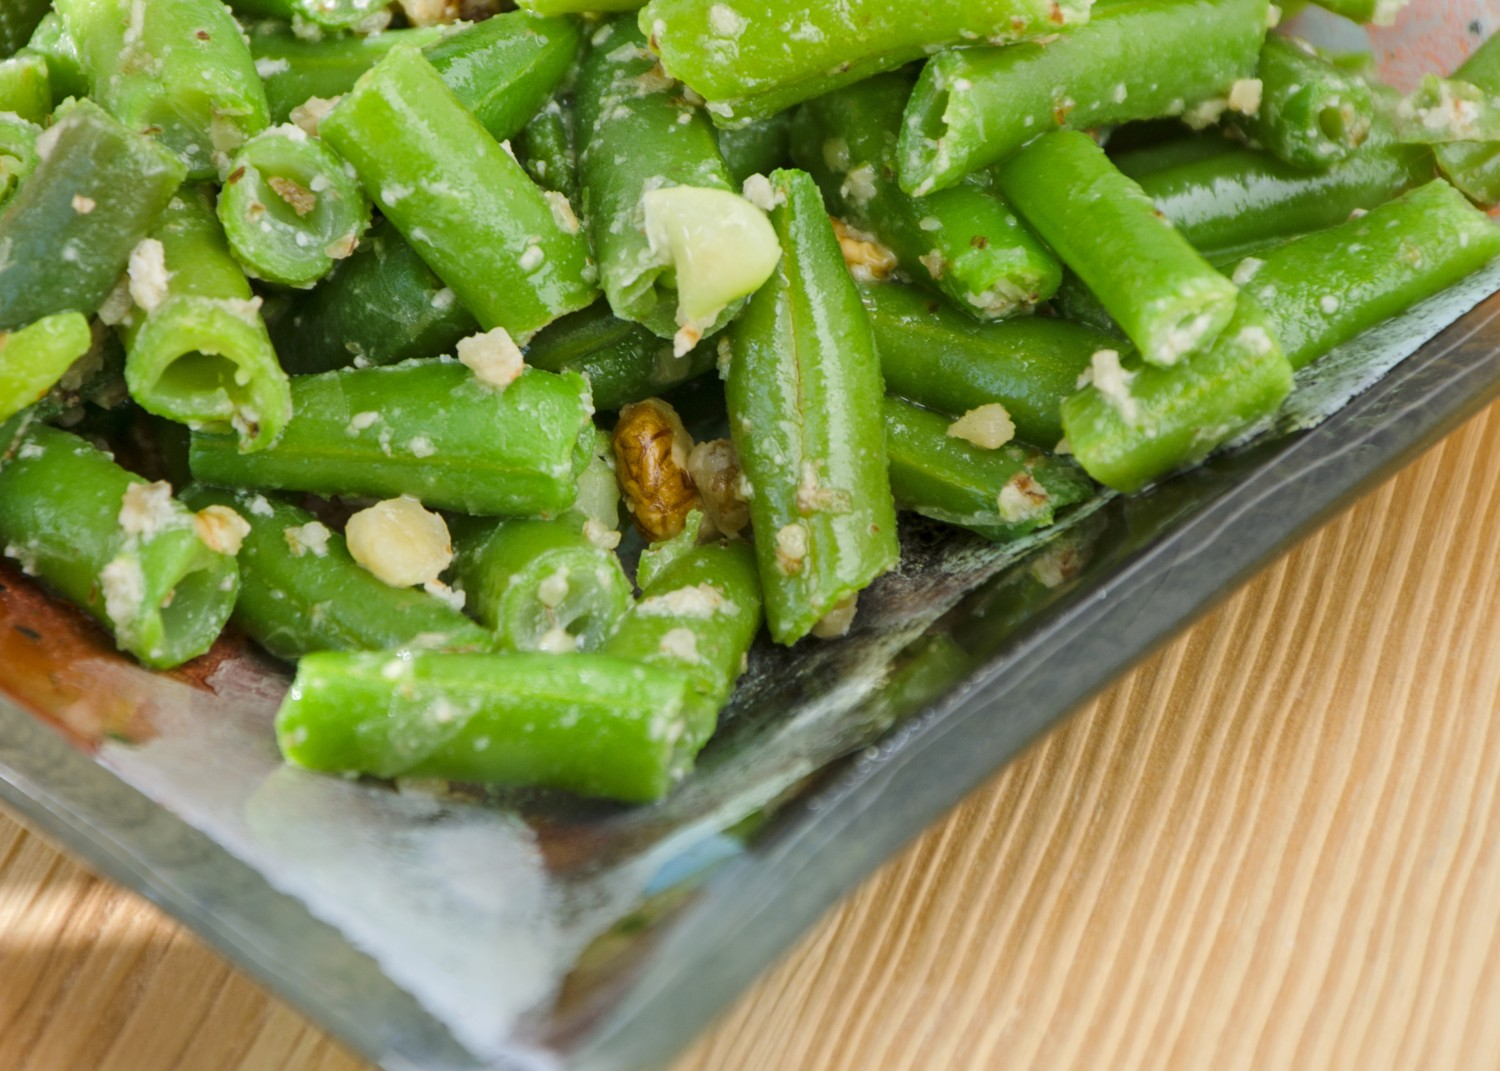 Image for Green Beans with Dates and Walnuts